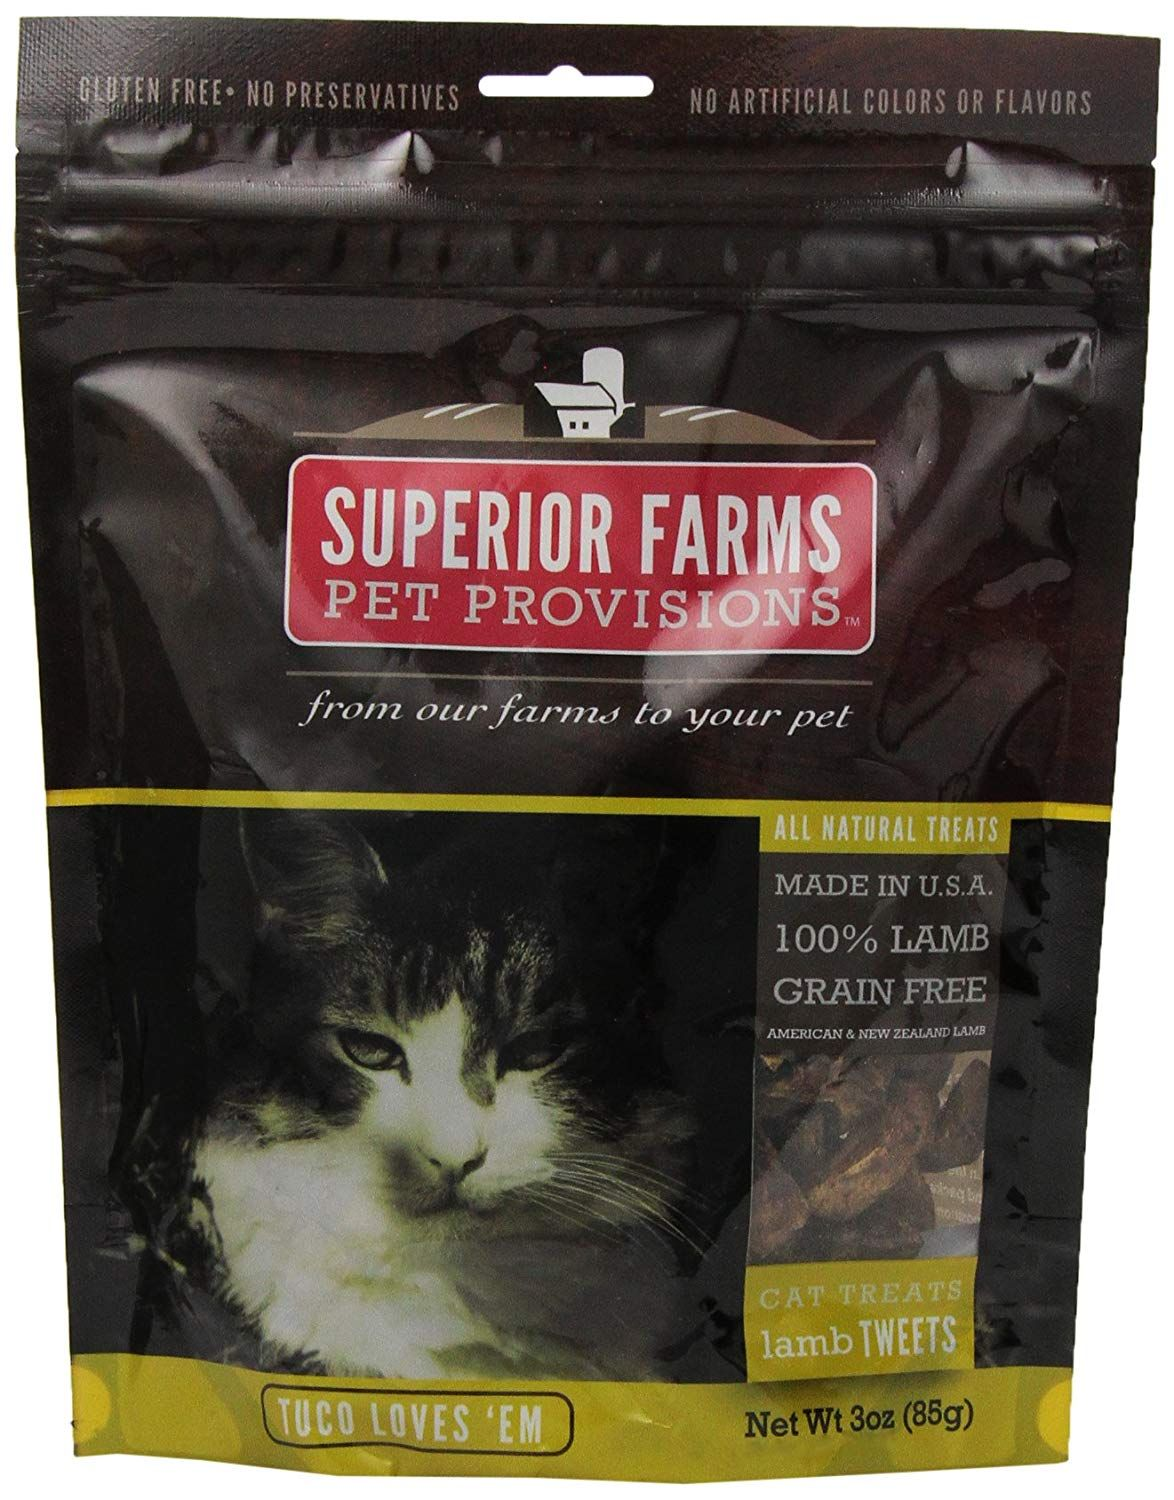 Superior Farms Pet Provisions Lamb Tweets Pet Treat 3 Ounce Do Hope You Enjoy The Image This Is An Affiliate Link Dogsnacks With Images Pet Treats Pets Dog Snacks